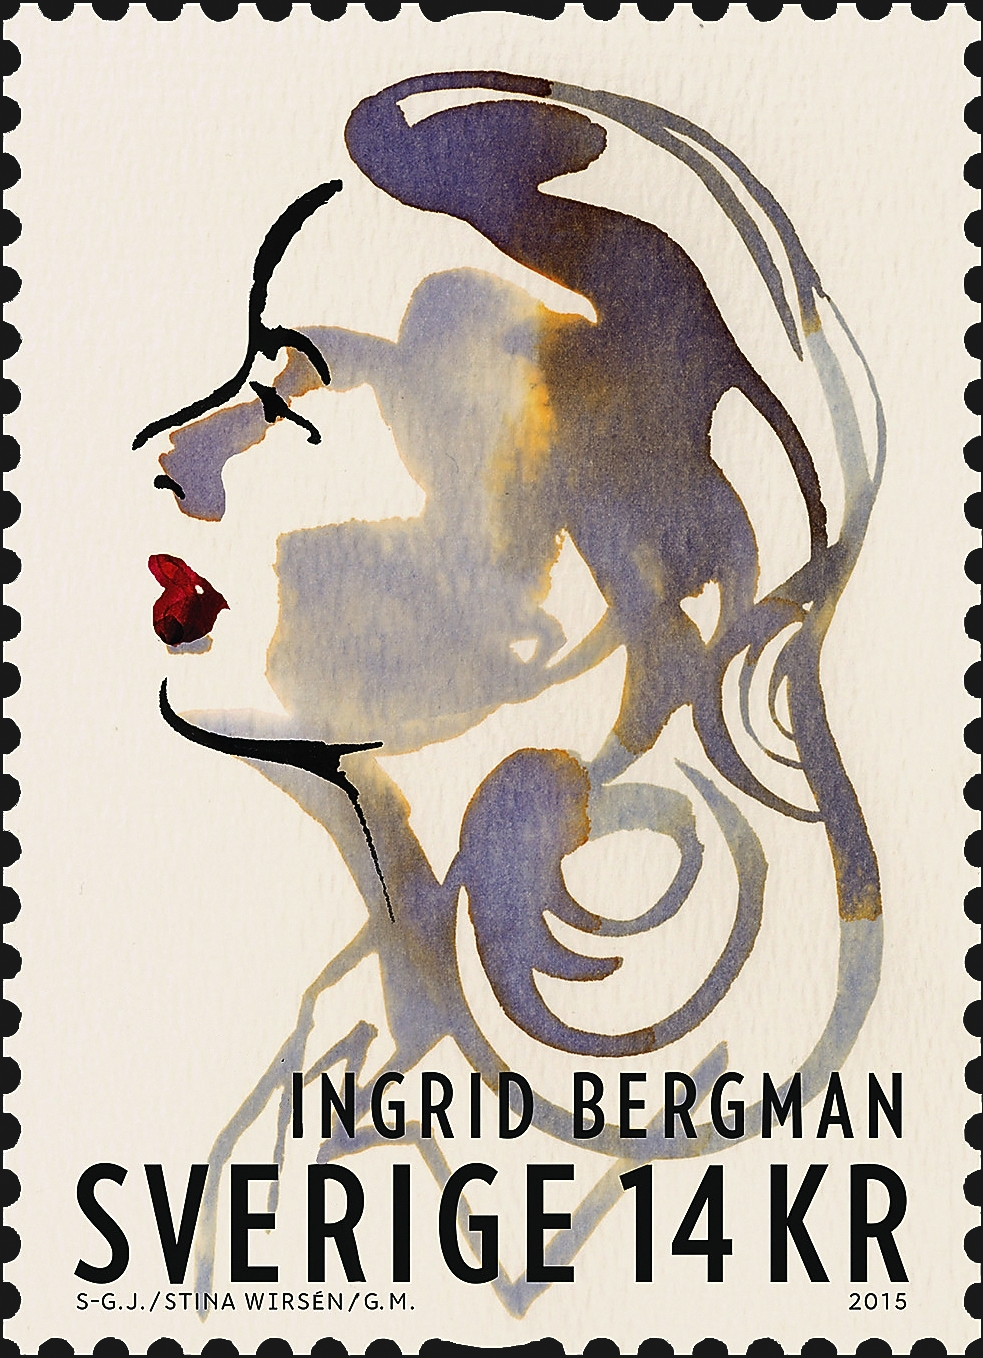 sweden-ingrid-bergman-second-joint-issue-stamp-2015